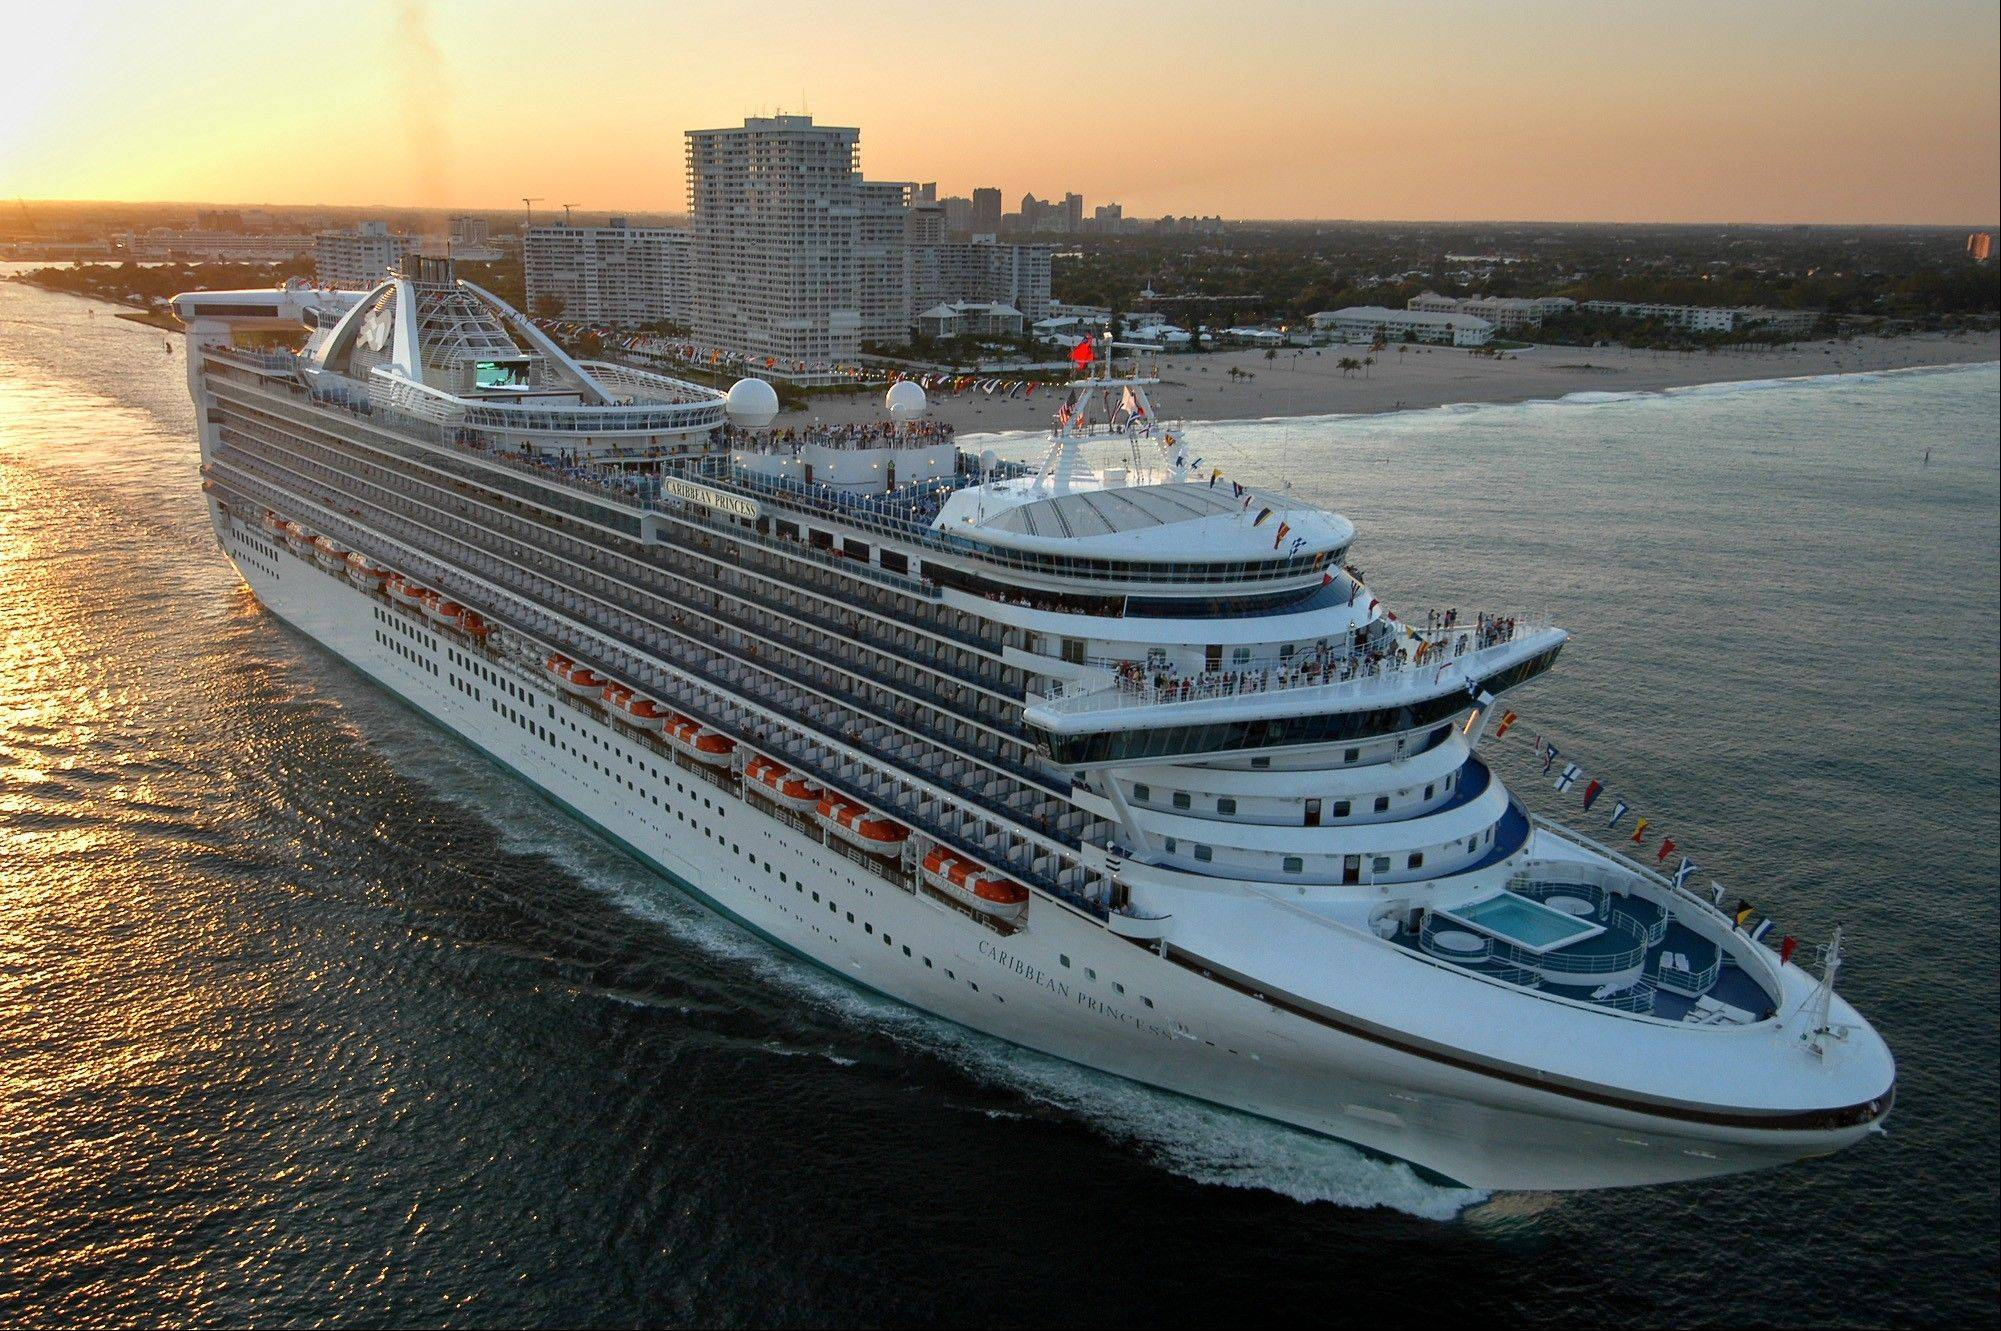 Federal health officials are investigating after an outbreak of illness has caused Caribbean Princess cruise ship to ends its trip early and returned to port in Houston late Thursday, Jan. 30, 2014 more than a day ahead of schedule after more than 170 passengers and crew members aboard became sick.